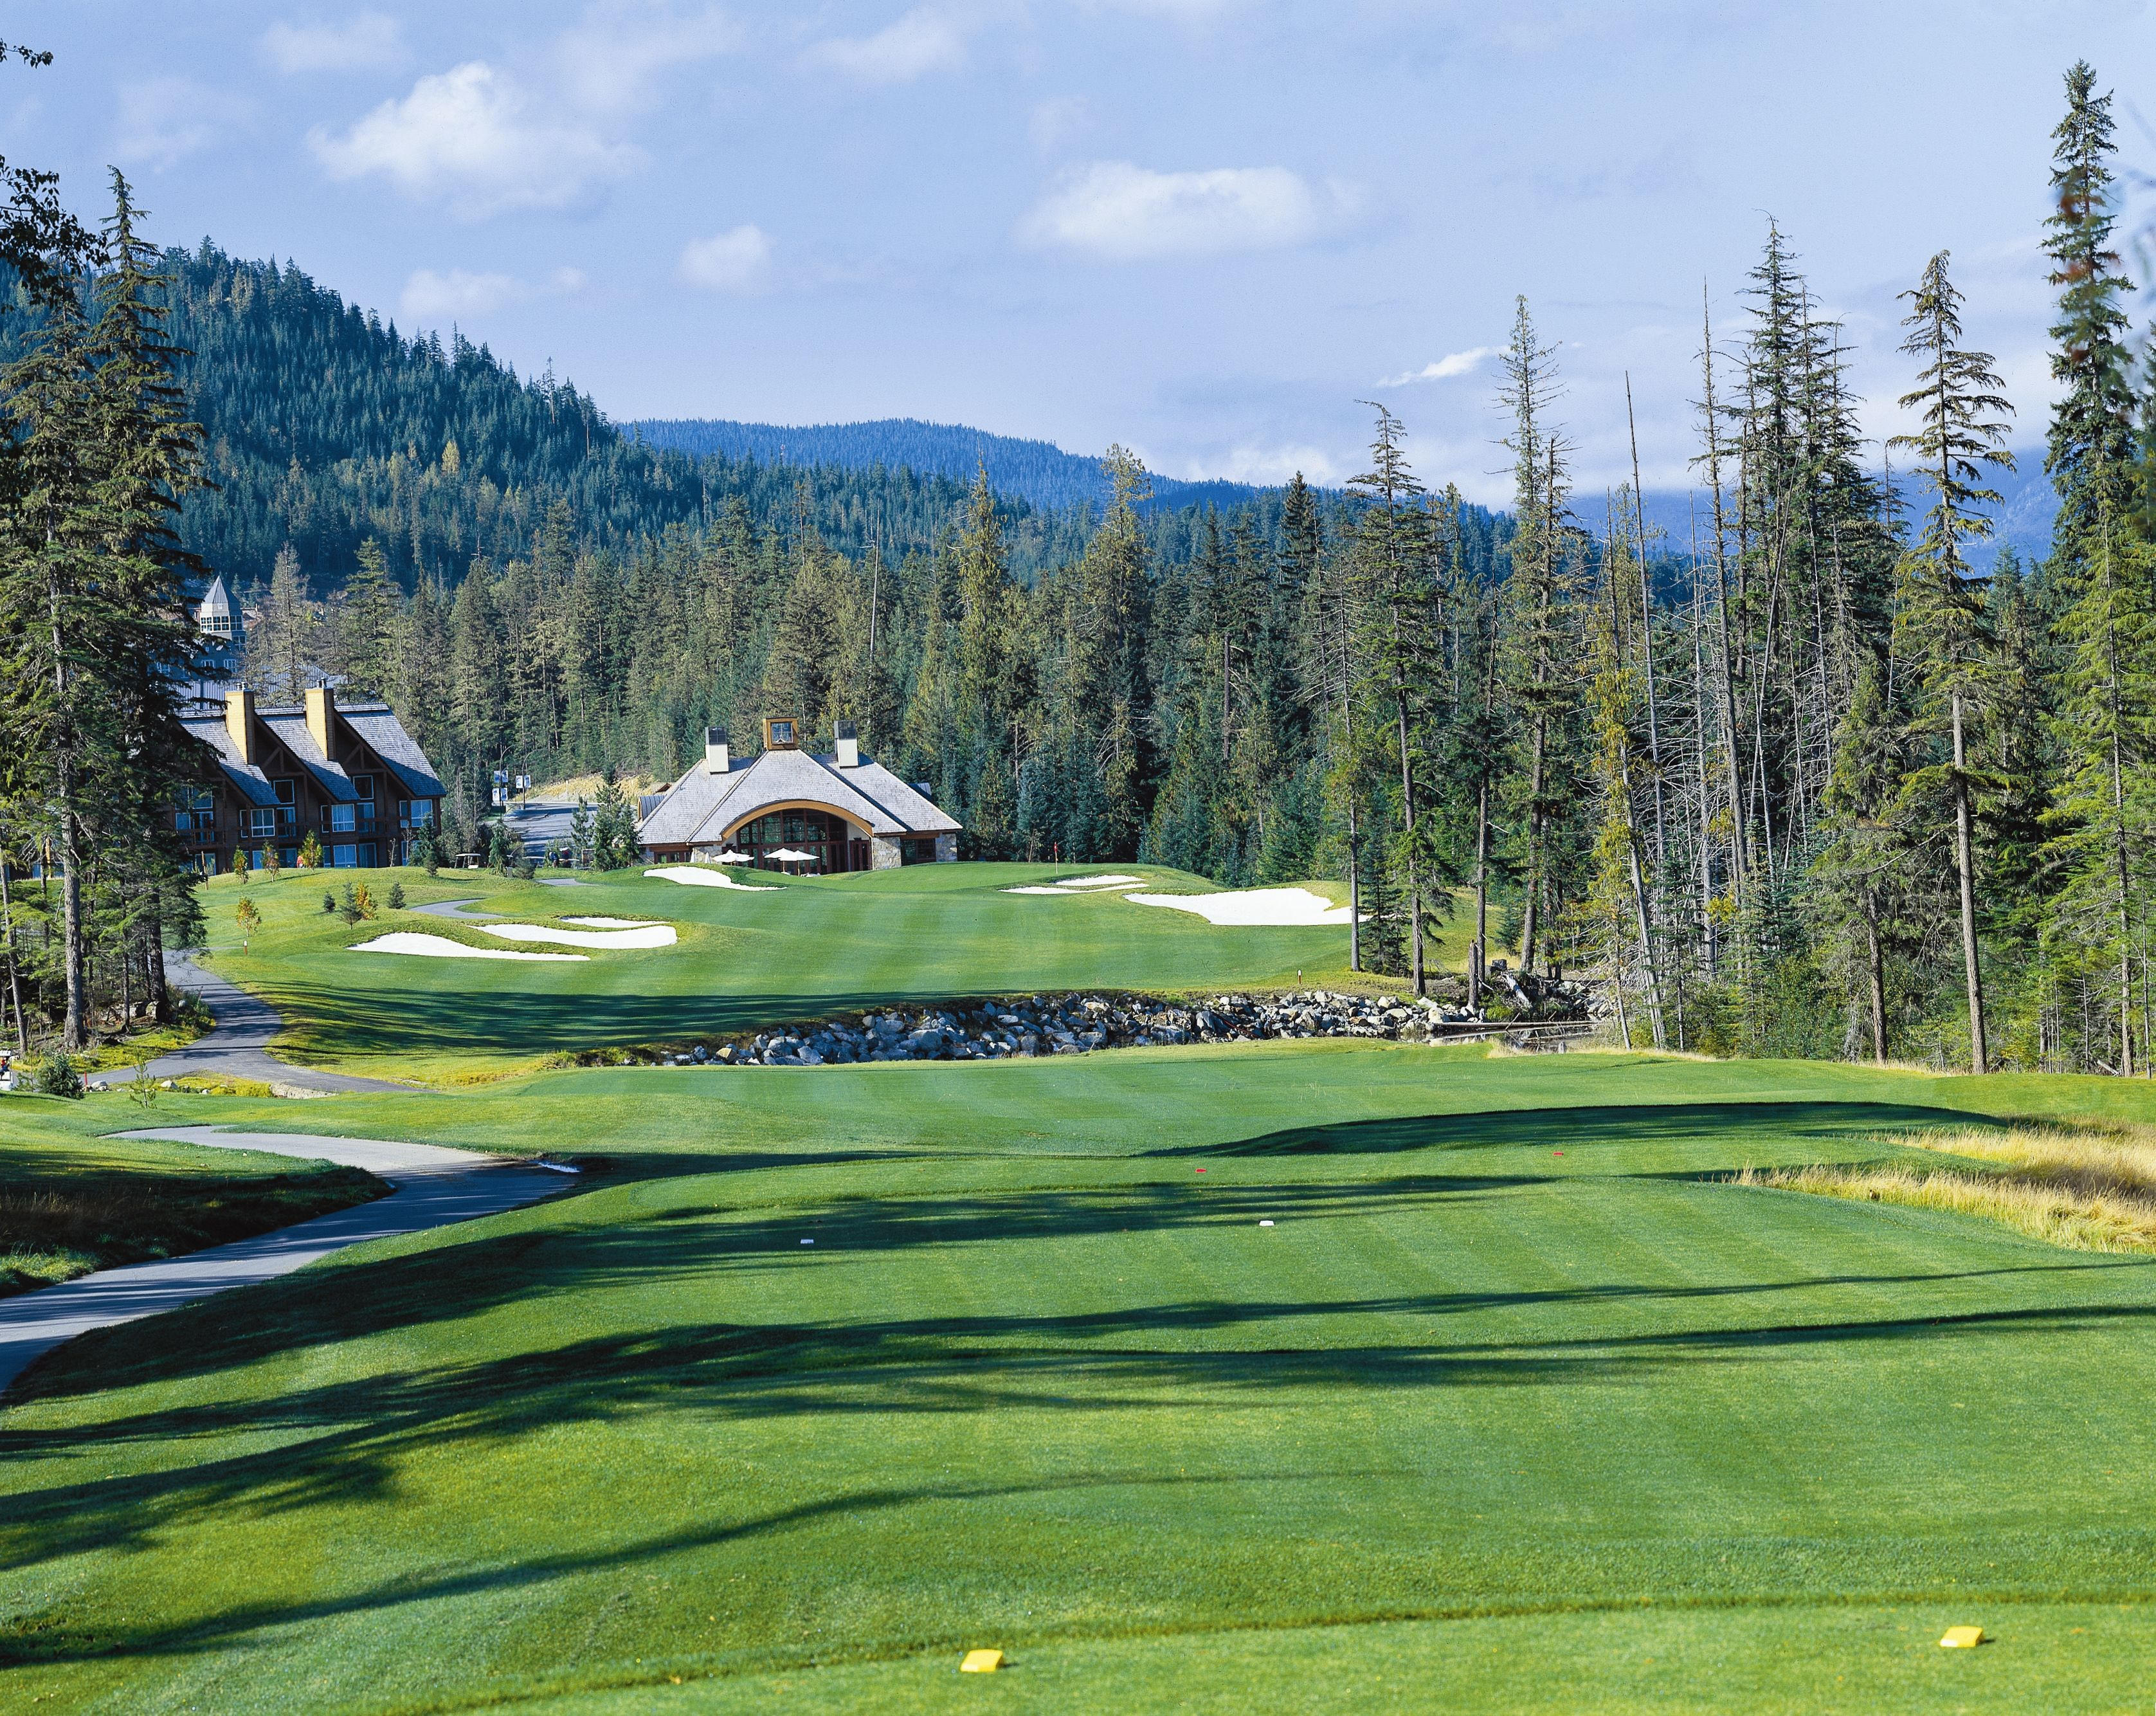 12+ Chateau whistler golf course ideas in 2021